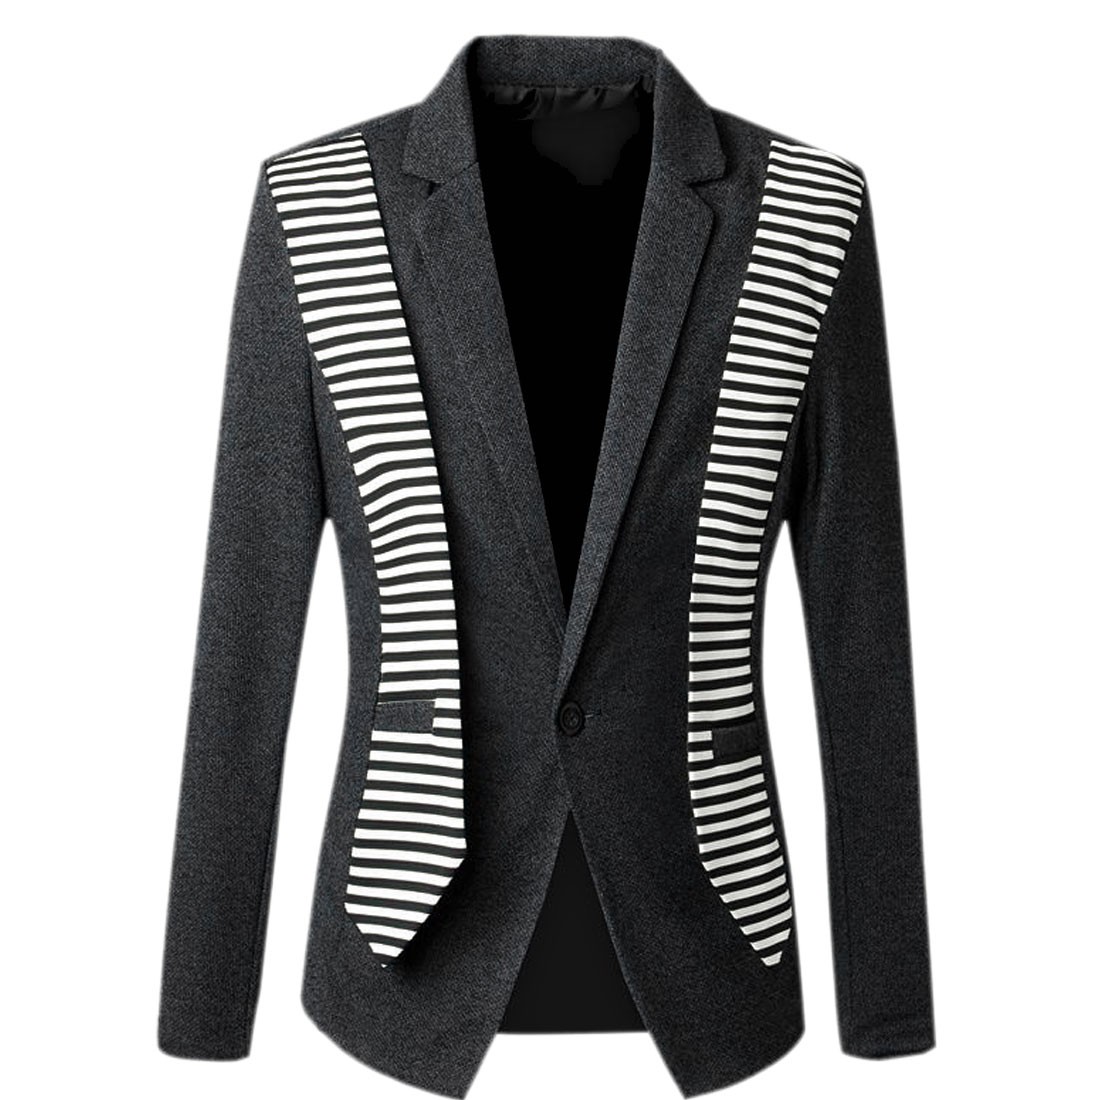 Men Peaked Lapel Long Sleeve Stripes Splice Blazer Dark Gray White S